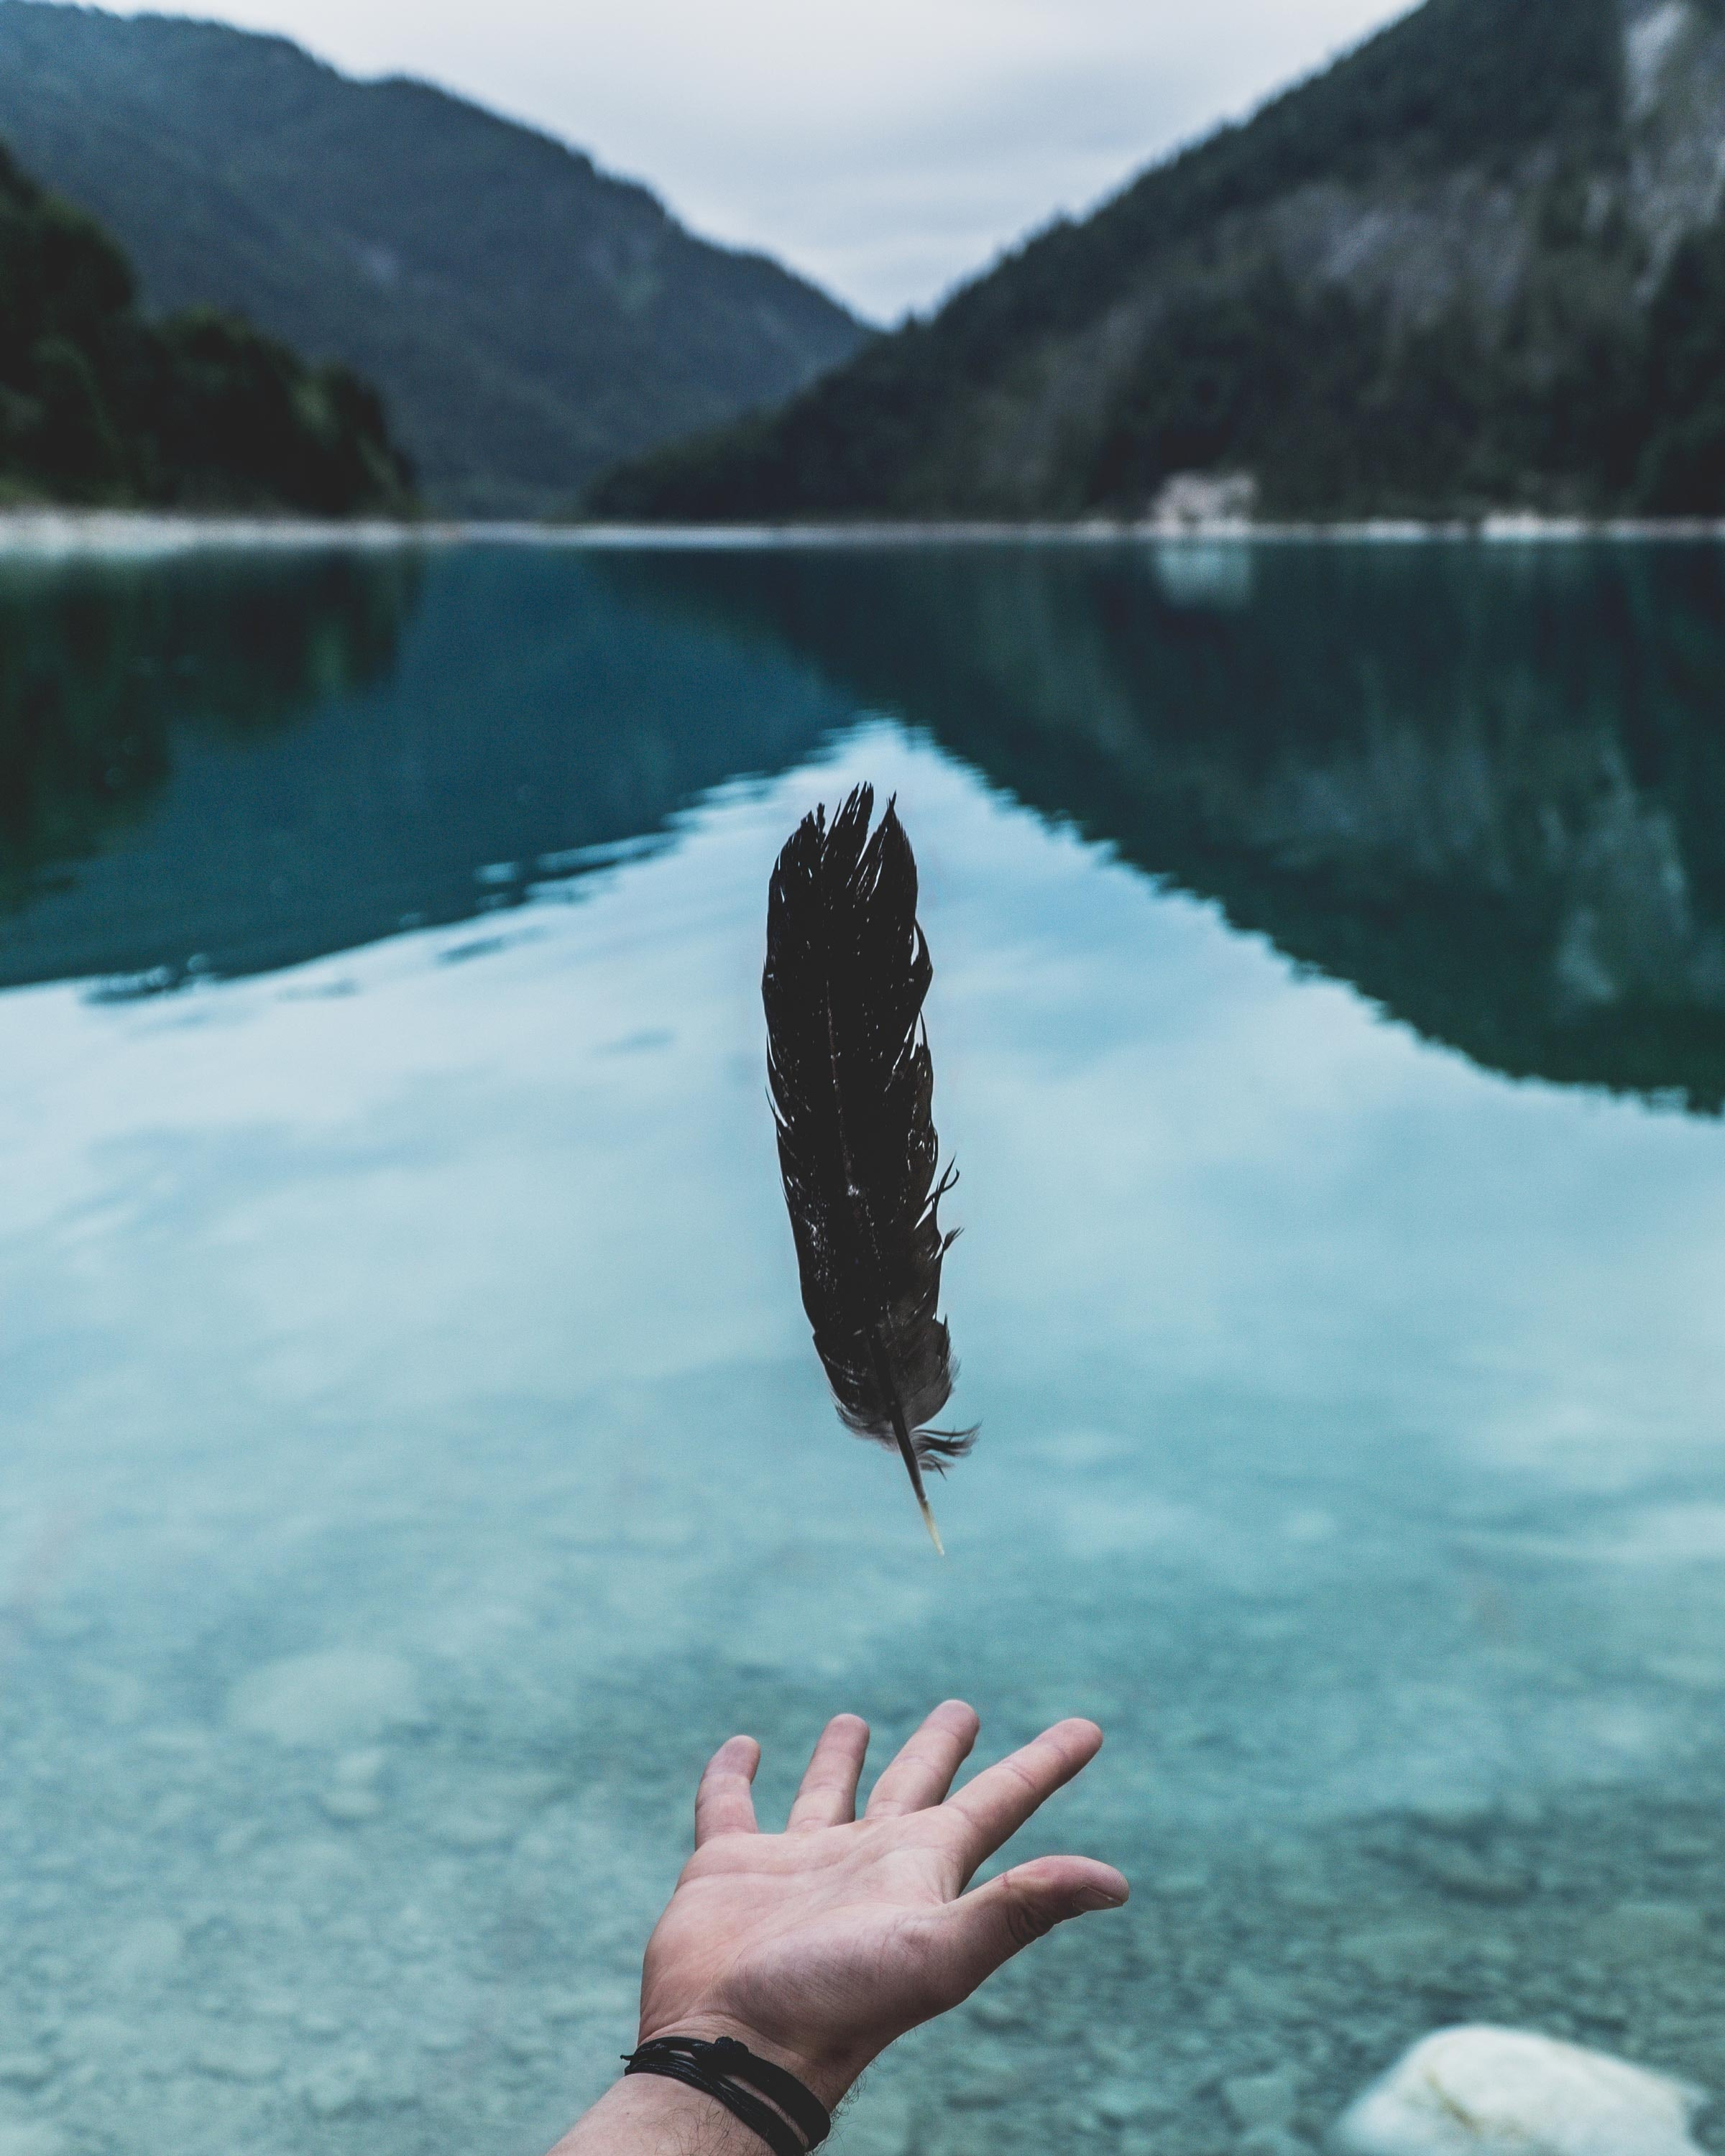 person attempting to grab feather floating beside water